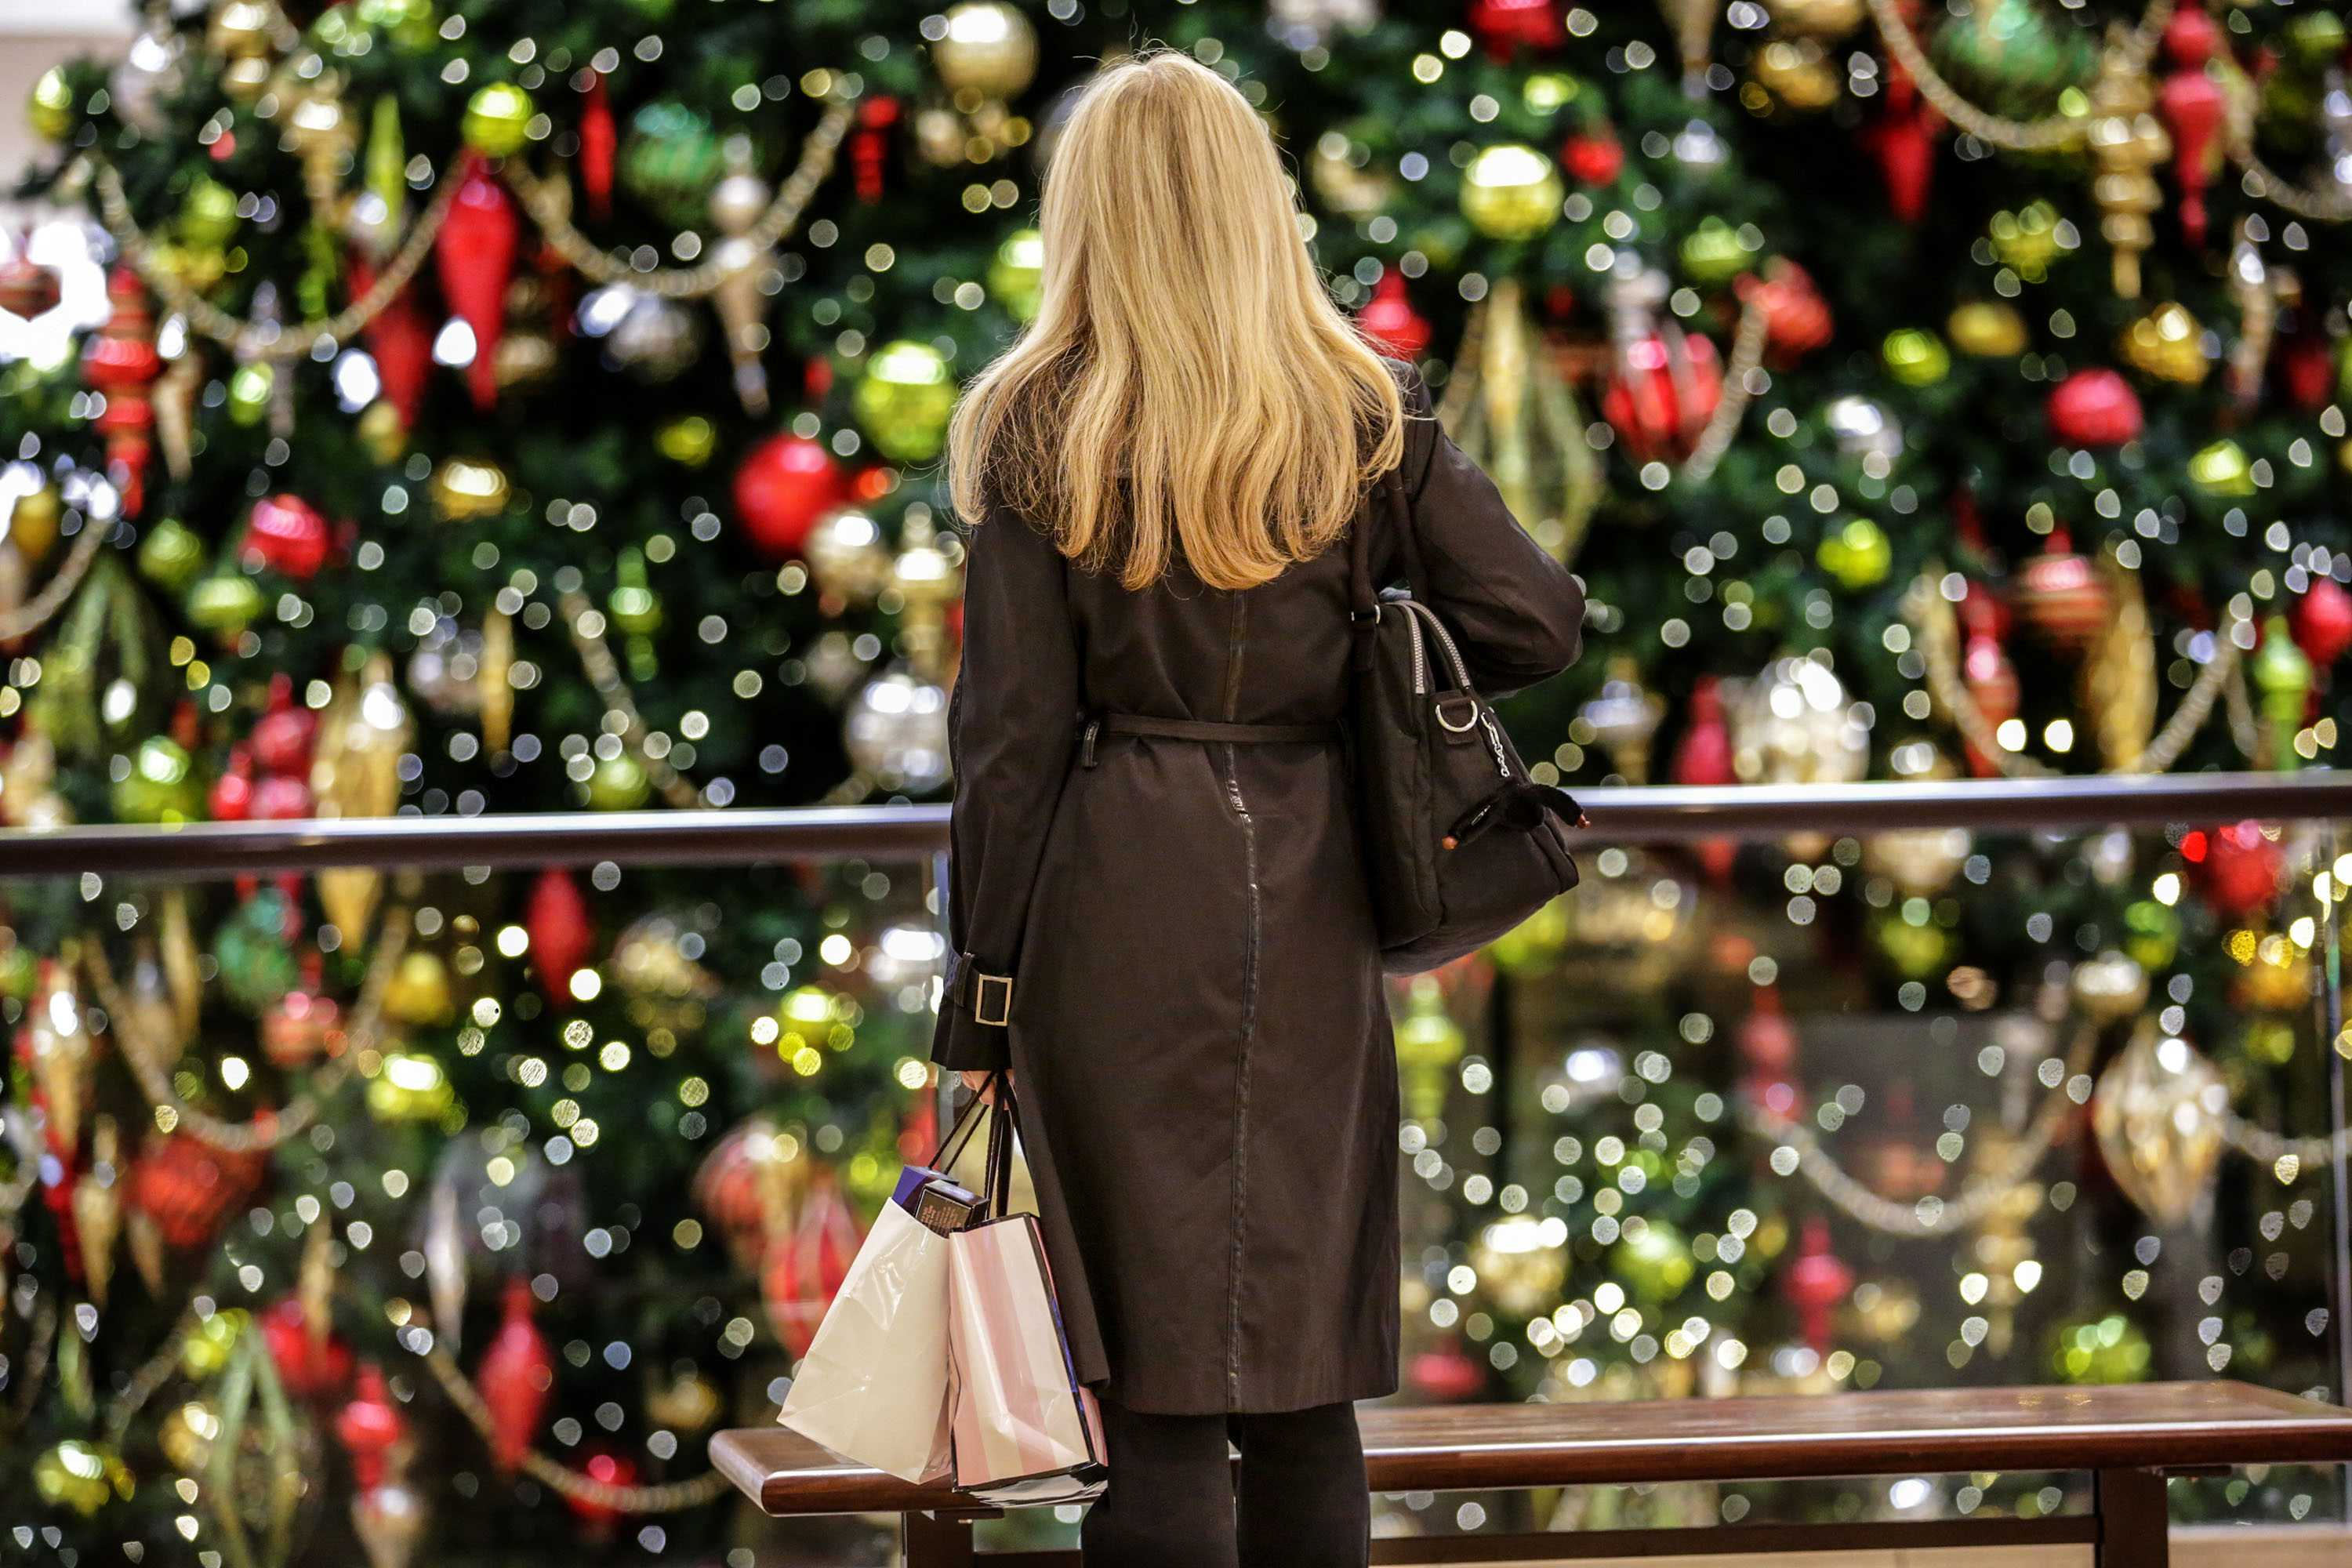 the commercialization of christmas The sanctimonious raise the commercialization of christmas about this time every year, but the holiday has been commercialized since year zero.